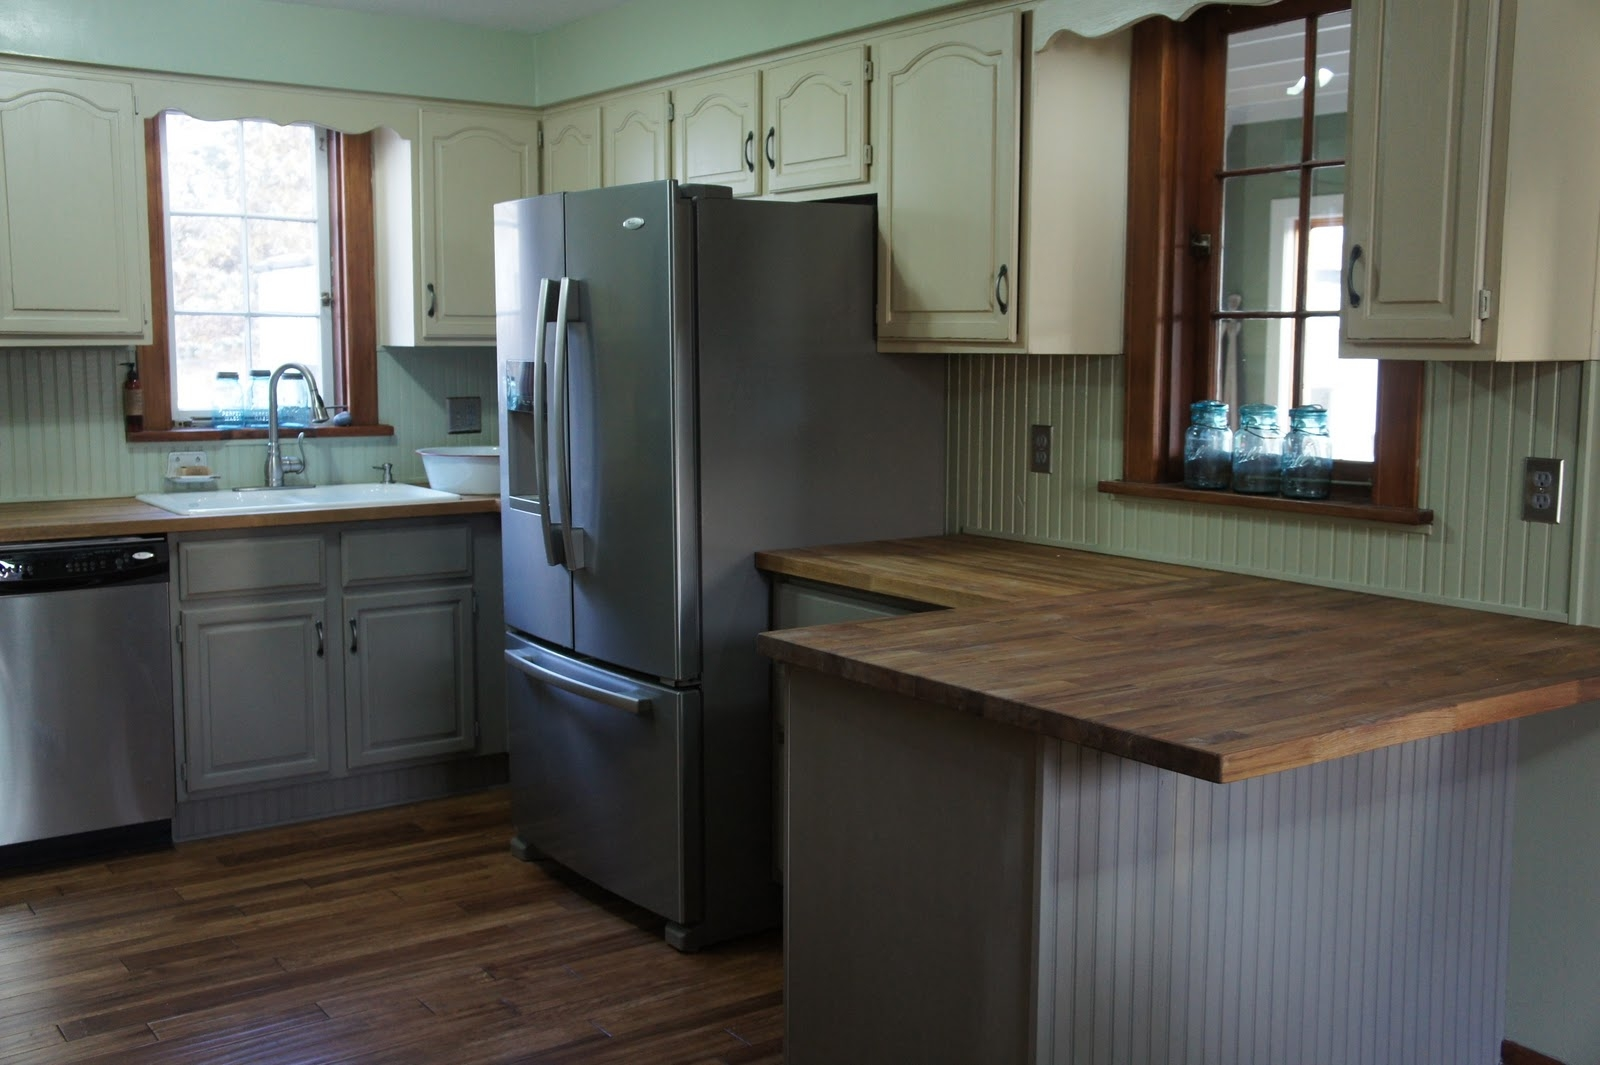 Lacquer Kitchen Cabinets Durability